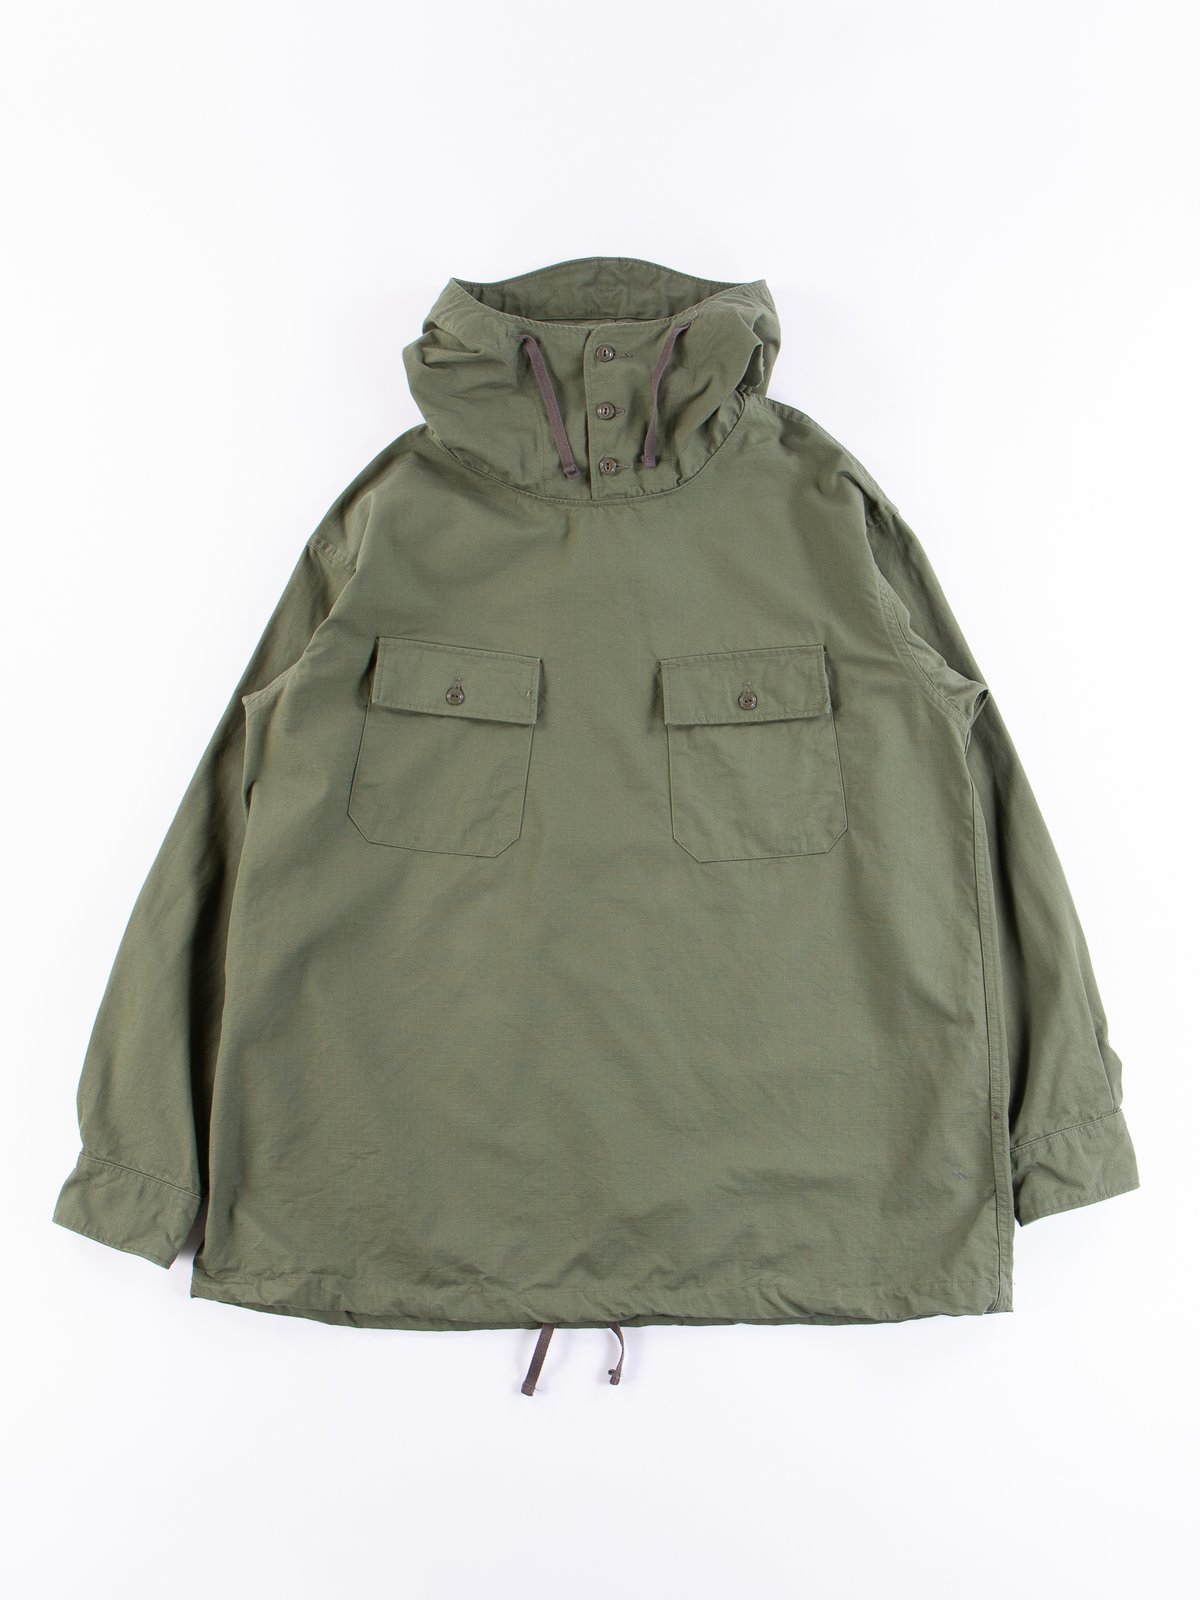 Olive Cotton Ripstop Cagoule Shirt - Image 1